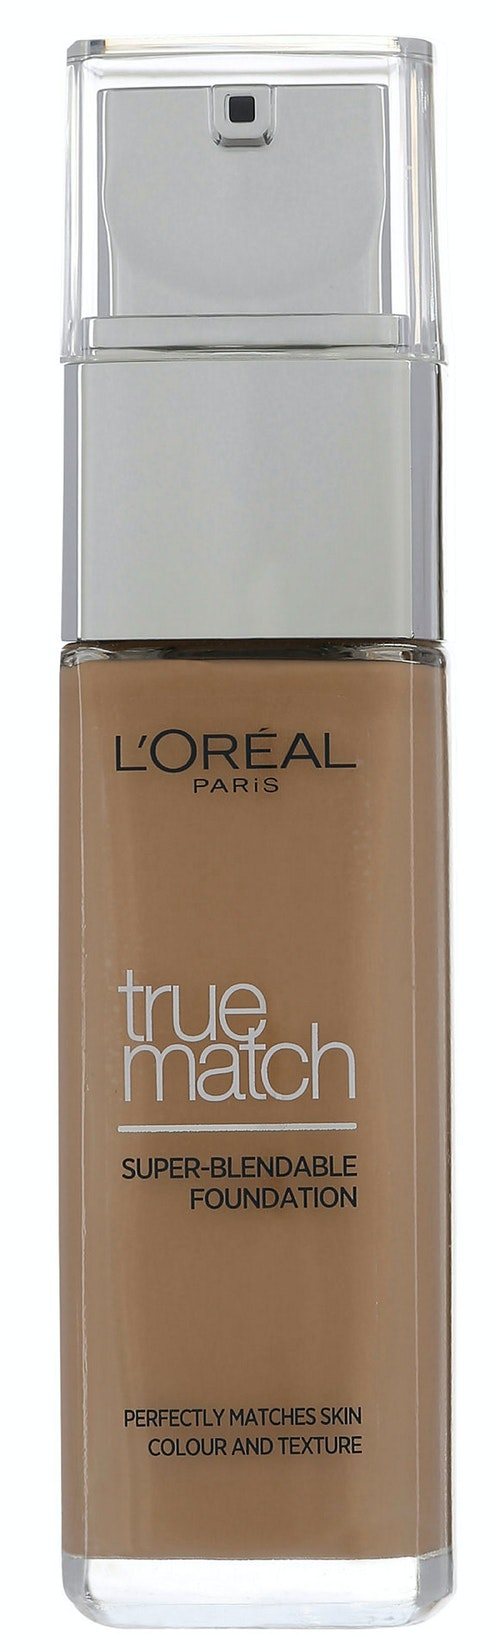 L'Oreal True Match Golden Beige 3D/3W Foundation 1 stk